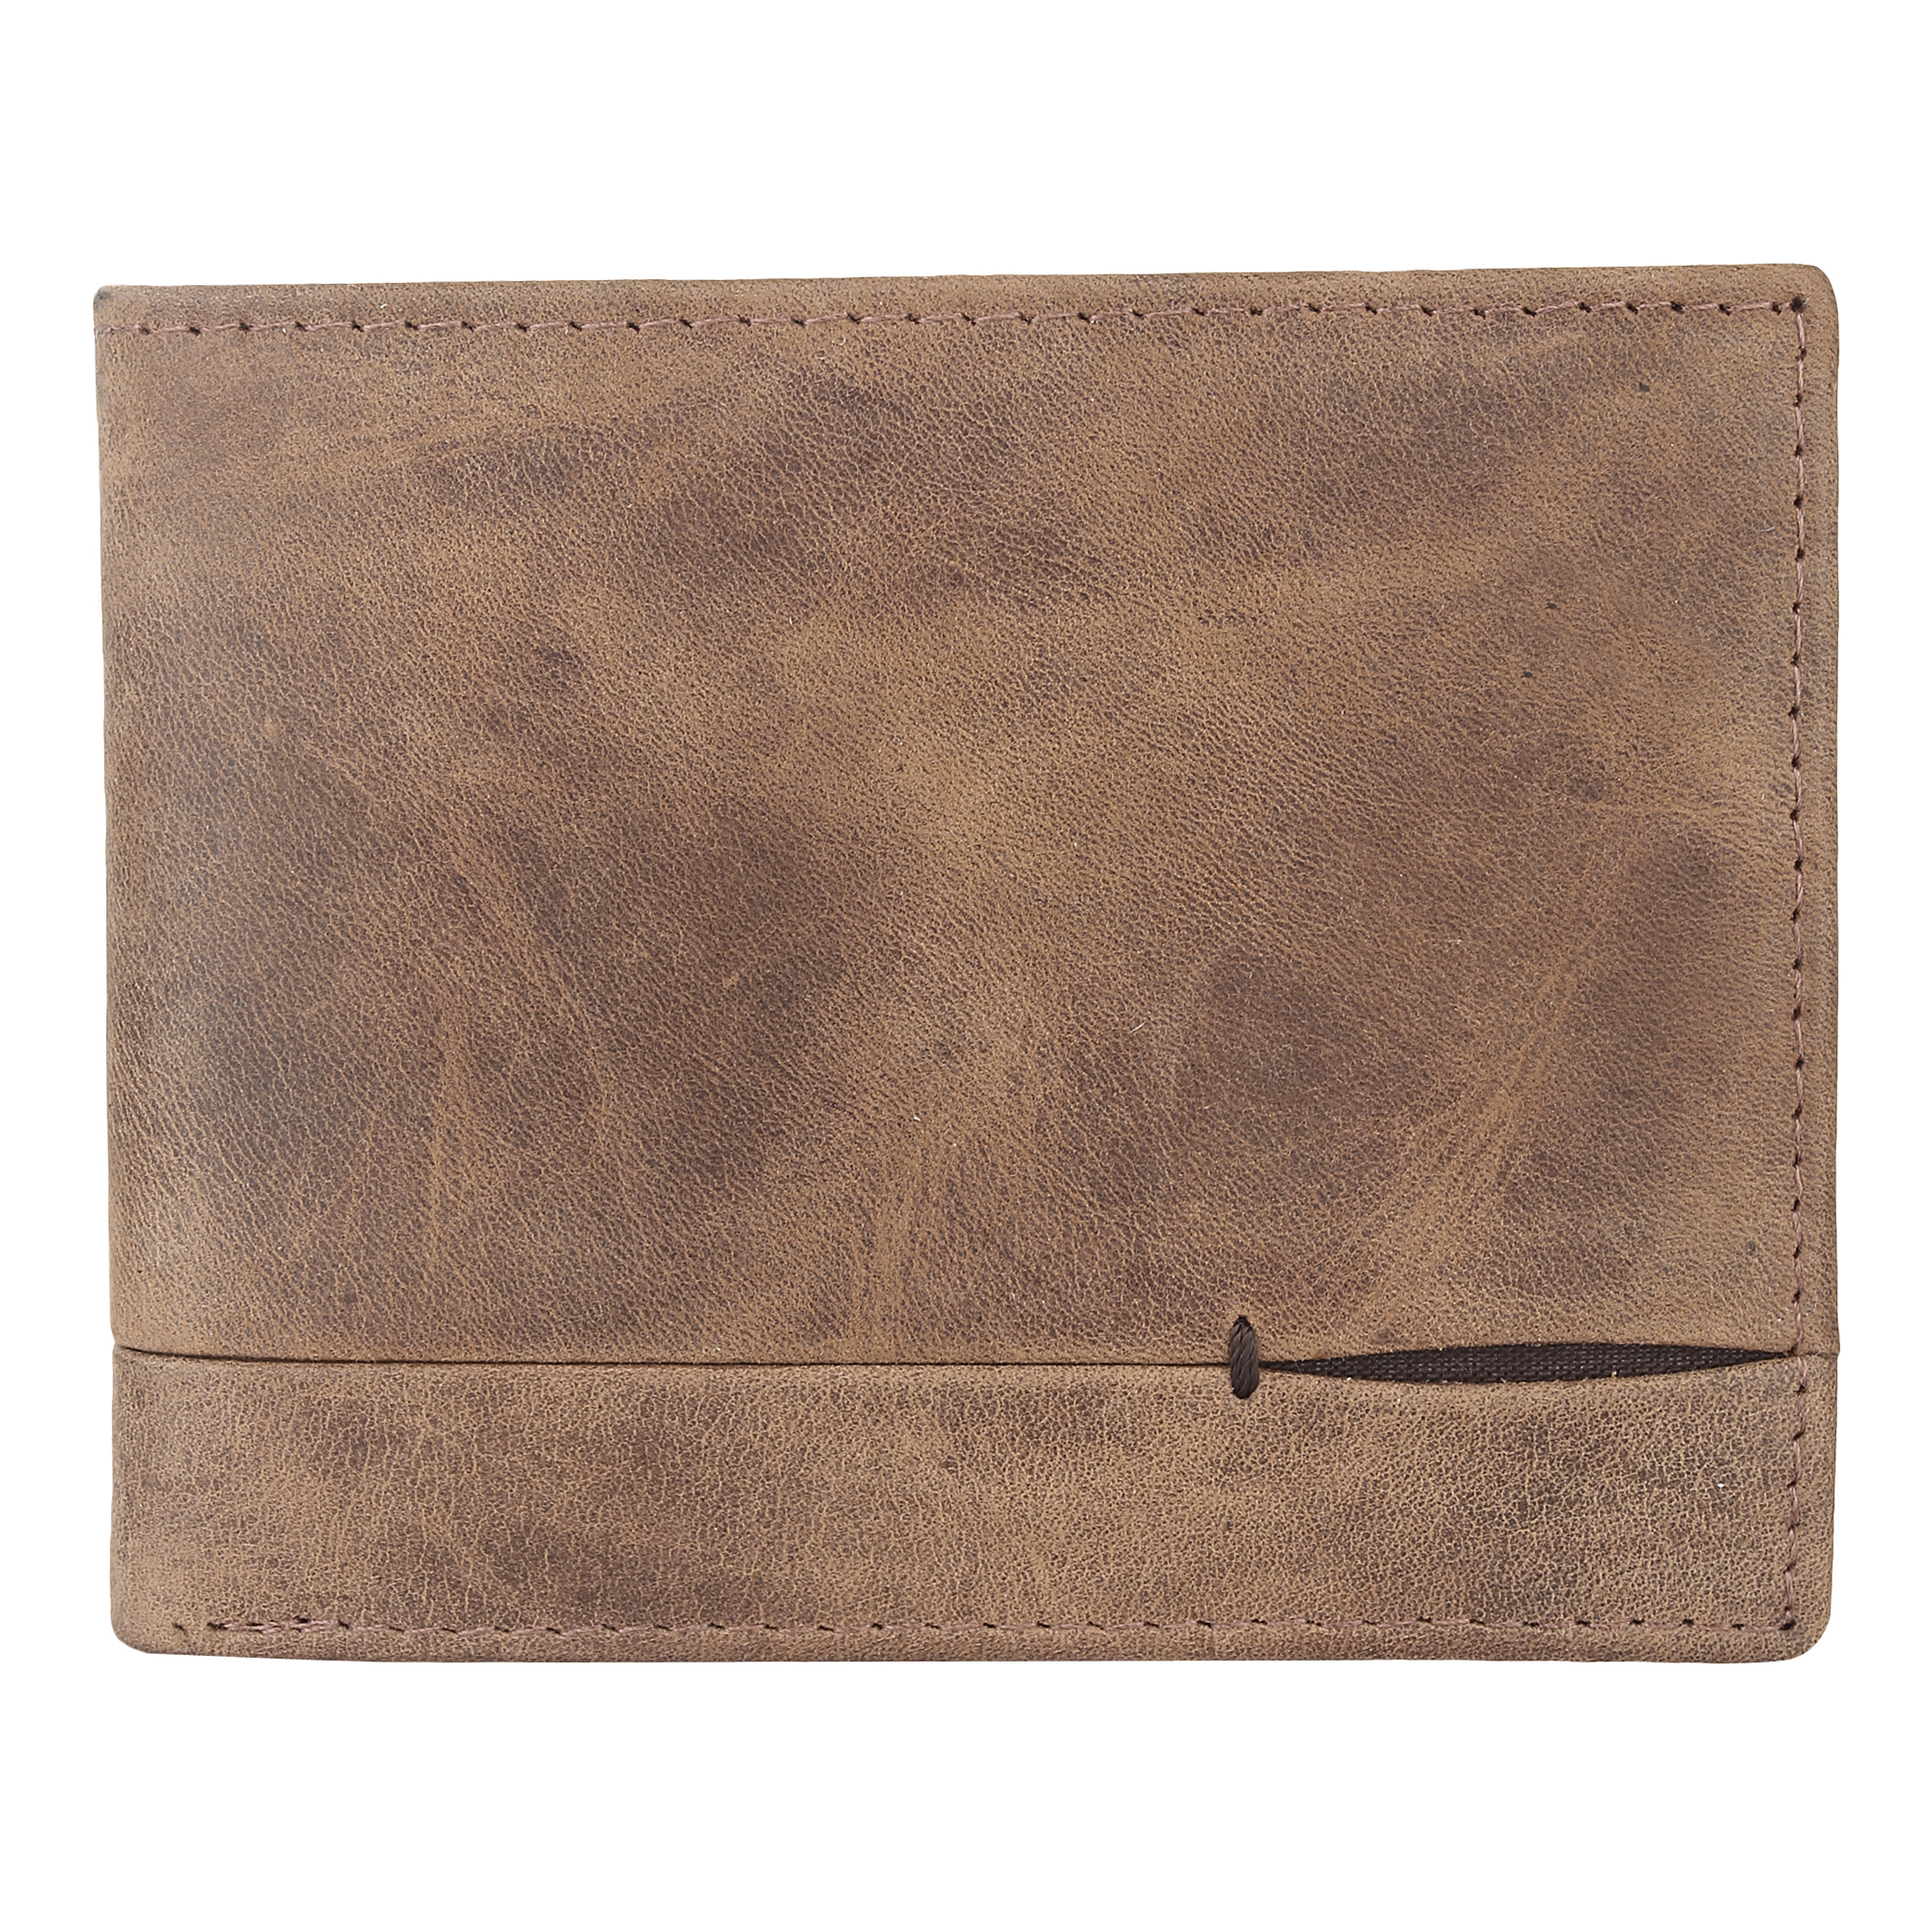 Leather Wallets Manufacturers in Armenia, Leather Wallets Suppliers in Armenia, Leather Wallets Wholesalers in Armenia, Leather Wallets Traders in Armenia